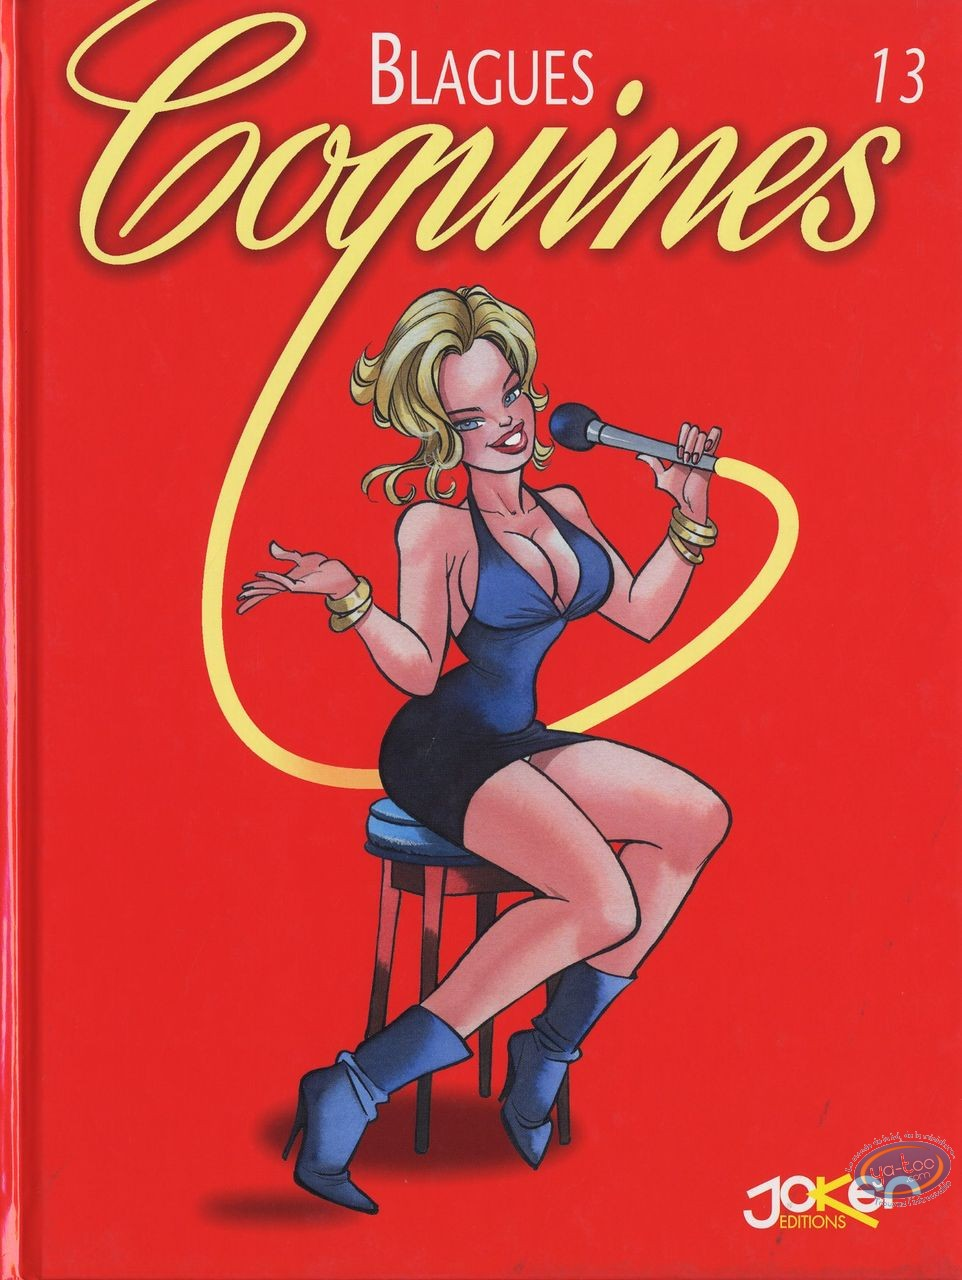 BD adultes, Blagues Coquines : Blagues Coquines, Tome 13